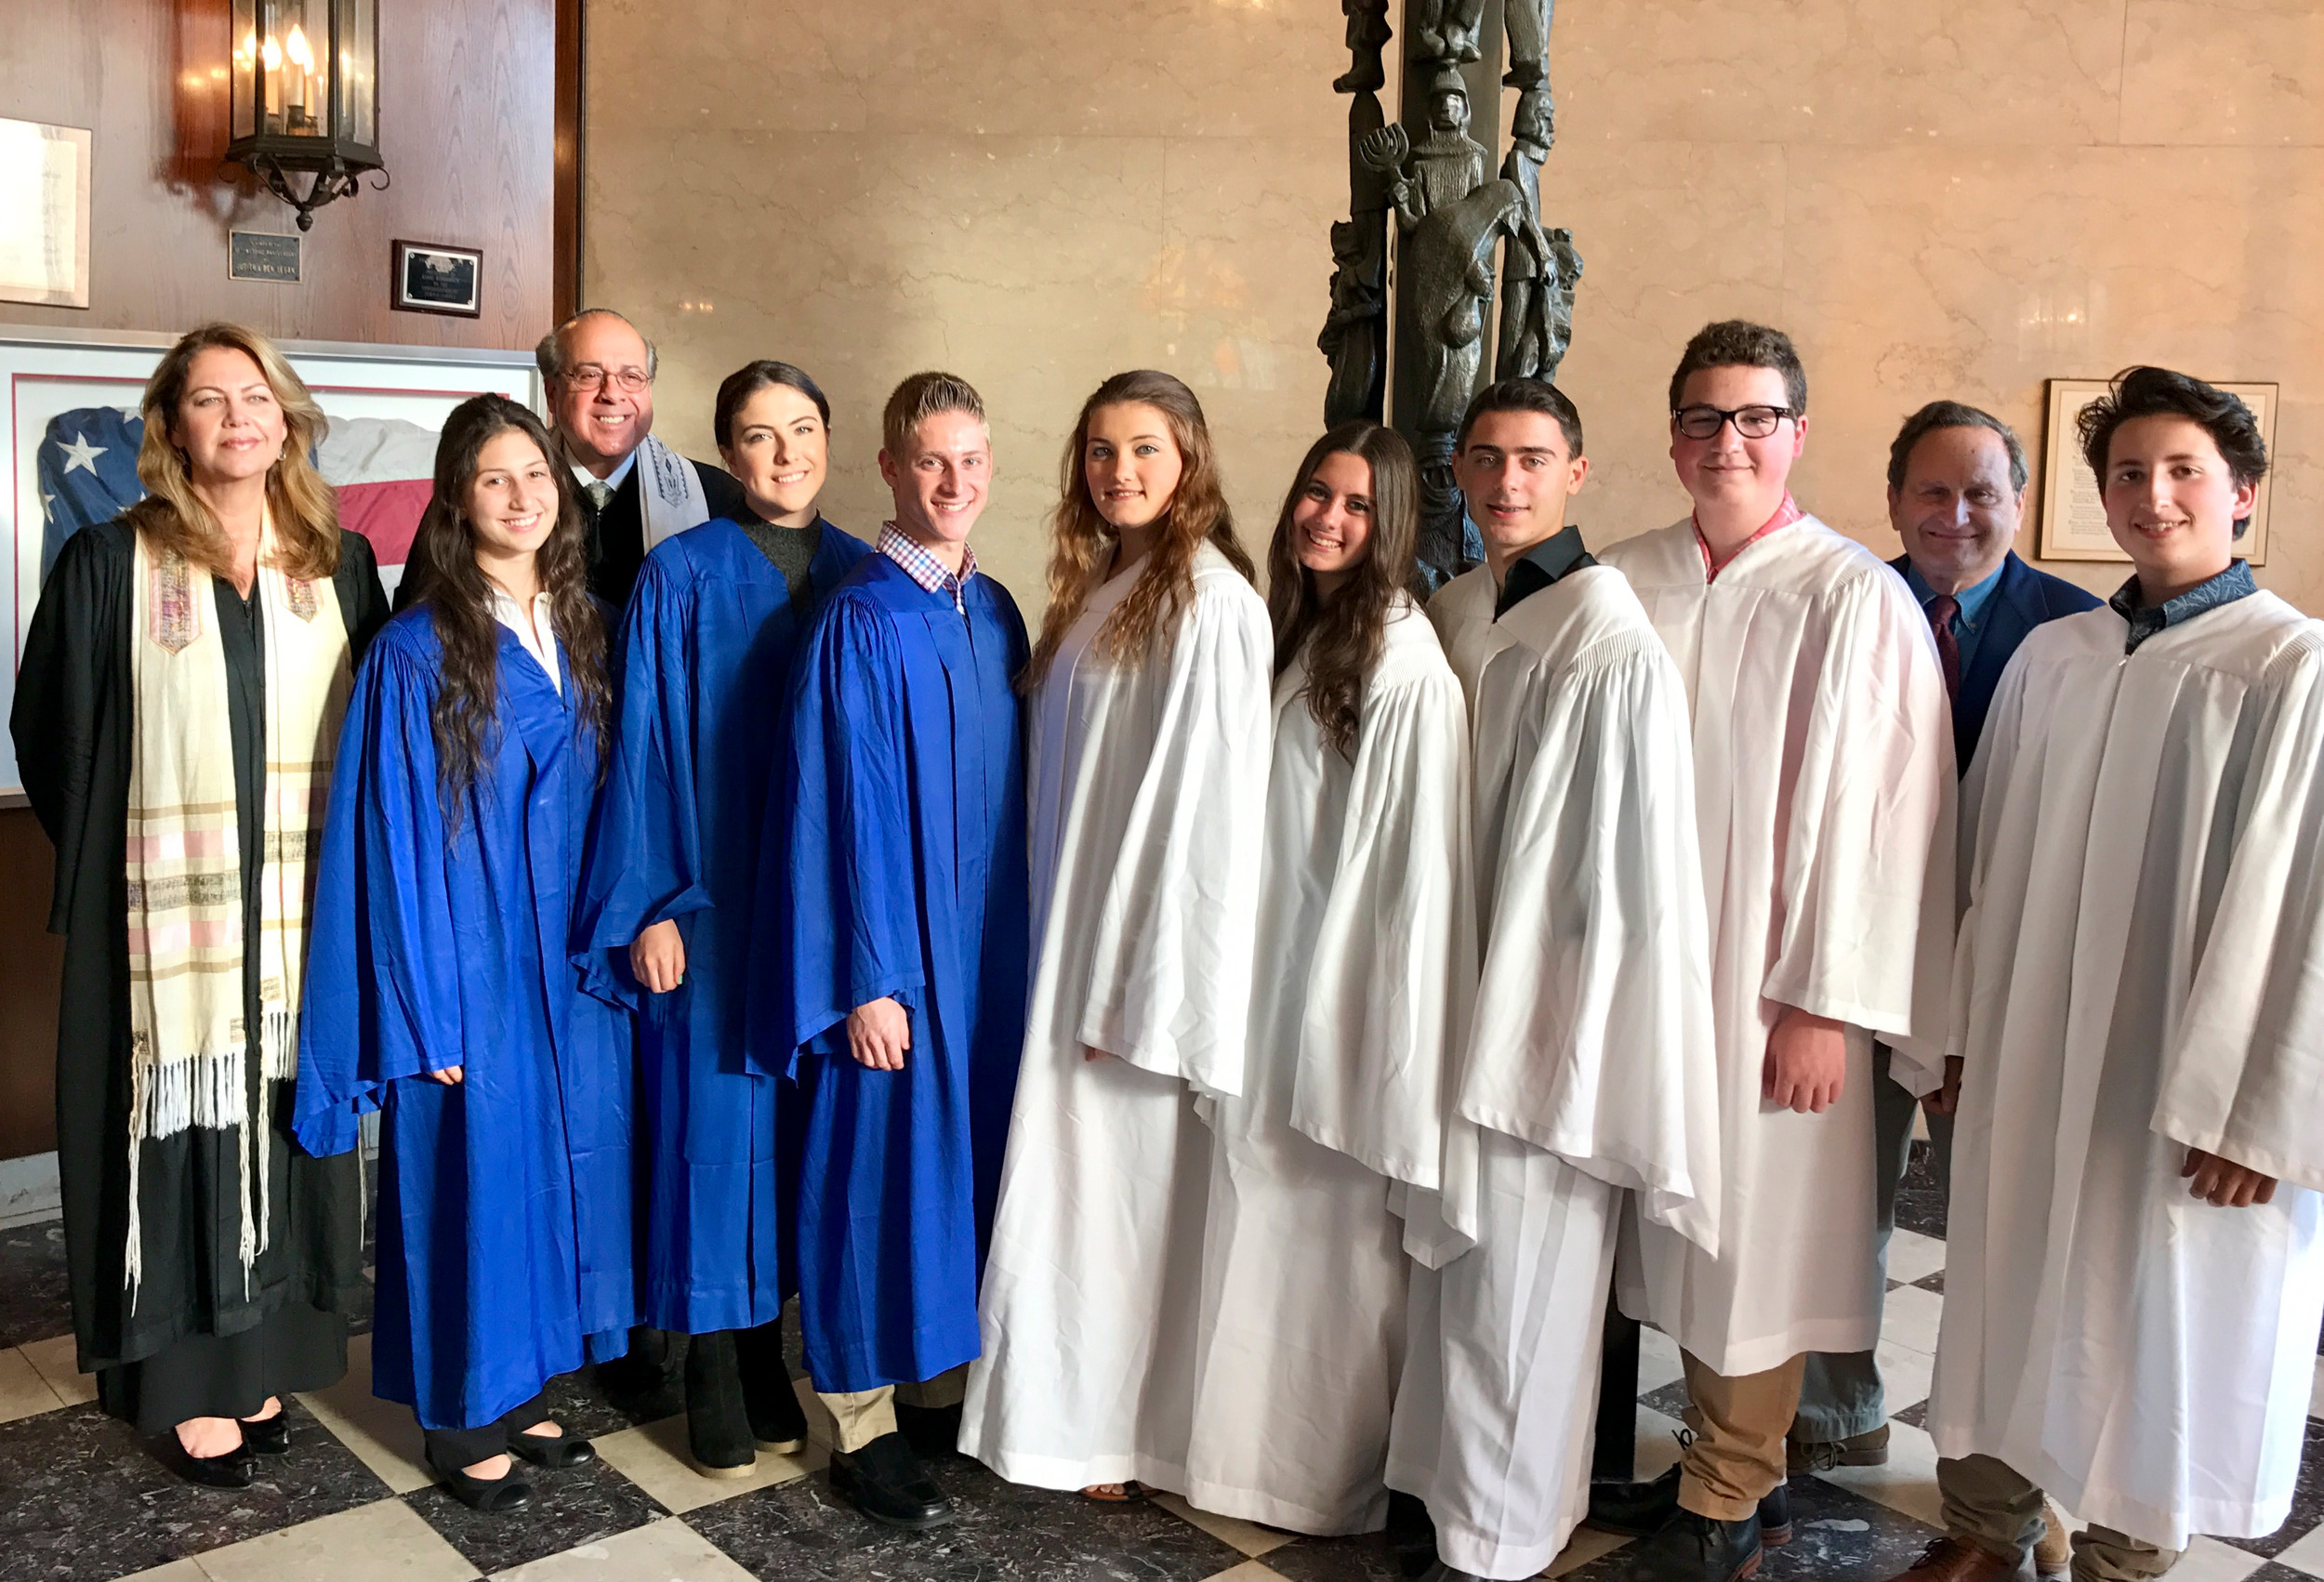 Religious school students from Temple Israel of Lawrence were conformed and graduated on May 31. From left were cantor Galina Makaveyev, Hannah Prusack, Rabbi Jay Rosenbaum, Sarah Nersesov, Sam Bodner, Hailee Elias, Madison Cosentino, Joseph Cosentino, David Clarke, temple President Kenneth Shapiro and Ben Simens.